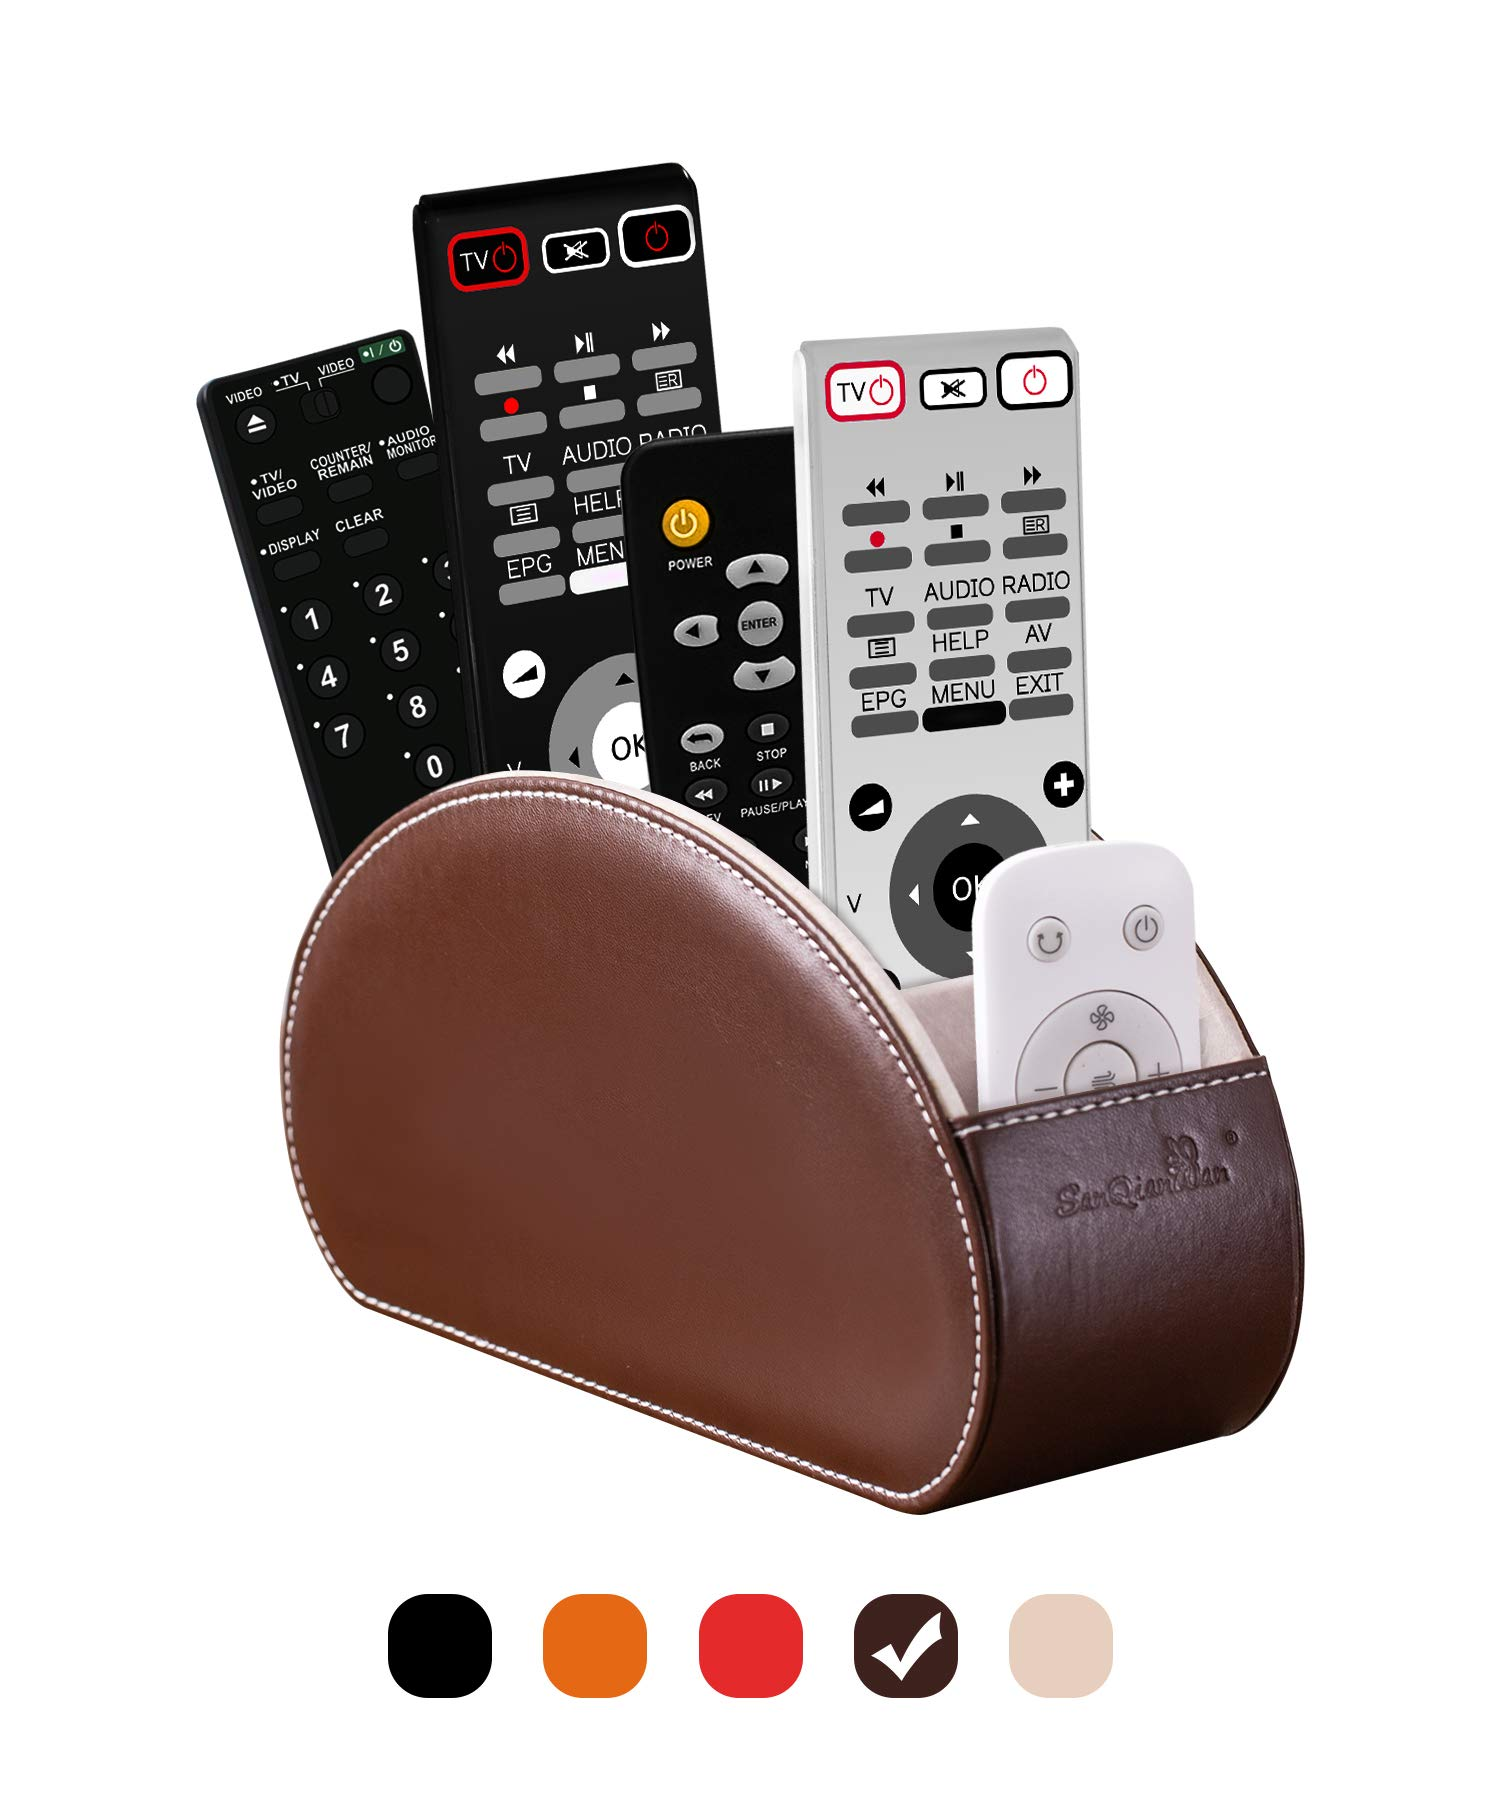 Tv Remote Control Holders Organizer Box with 5 Compartment PU Leather Multi-Functional Desk Organize and Storage Caddy Store tv Remote Holders ,Brush ,Pencil,Glasses and Media Player (Nut Brown)